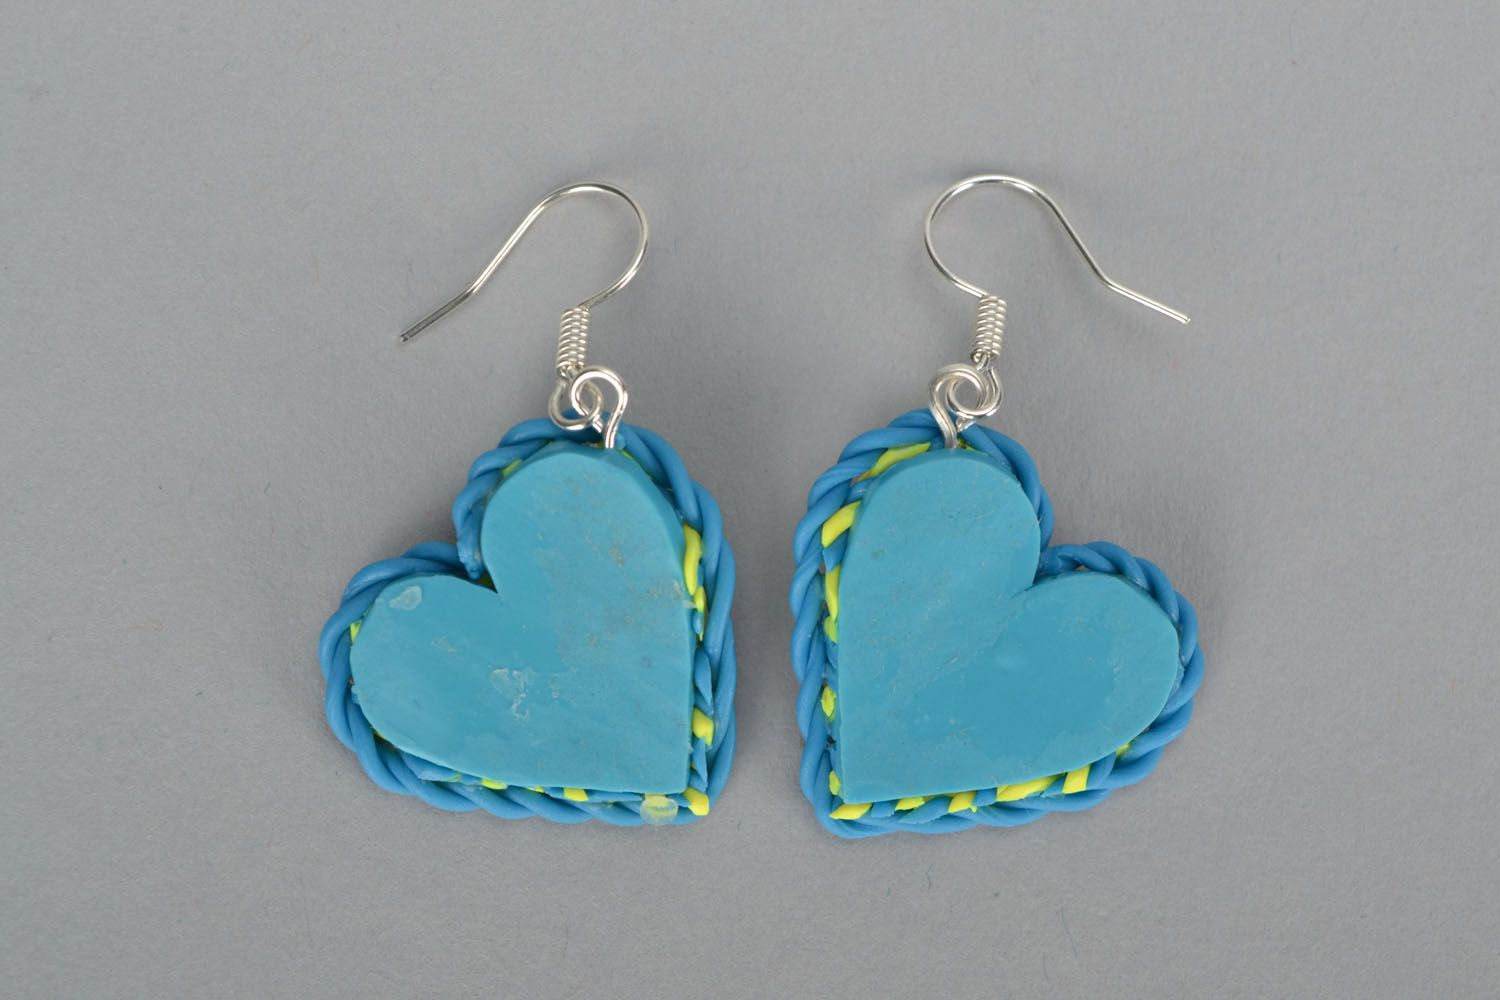 Plastic heart-shaped earrings photo 3